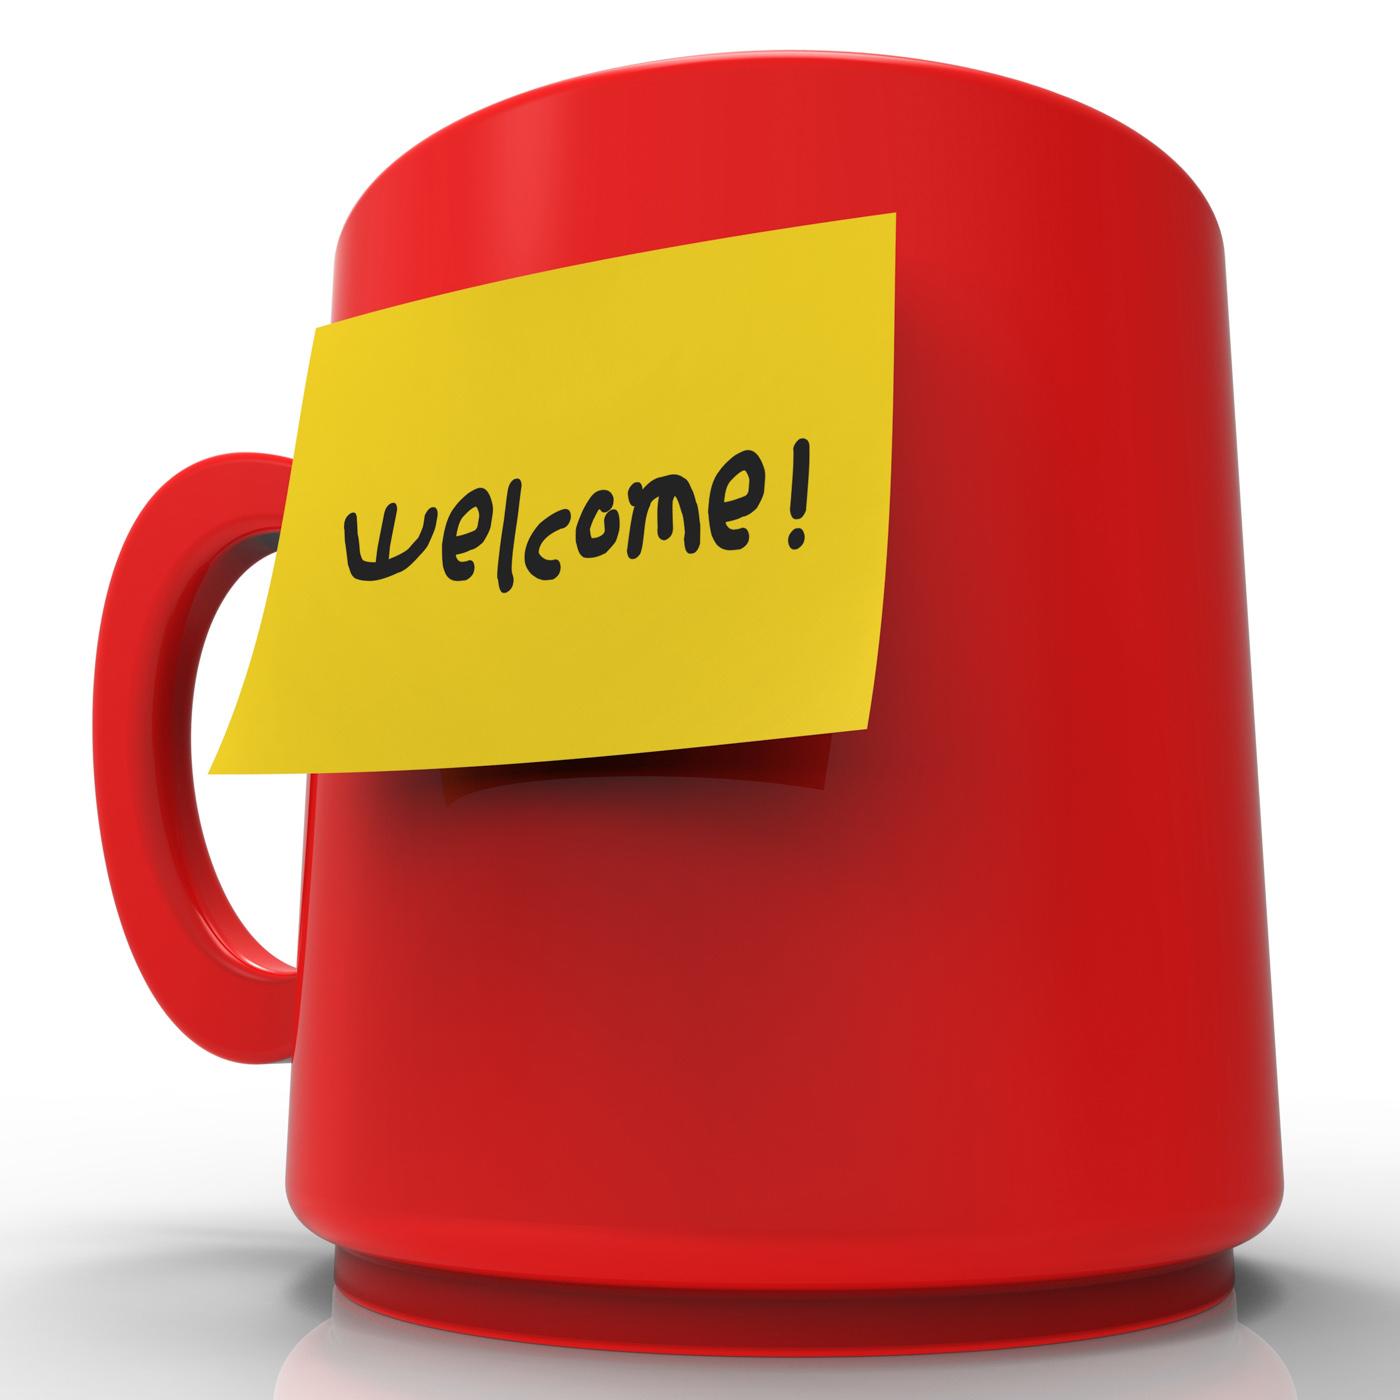 Welcome message shows arrival messages and correspondence 3d rendering photo